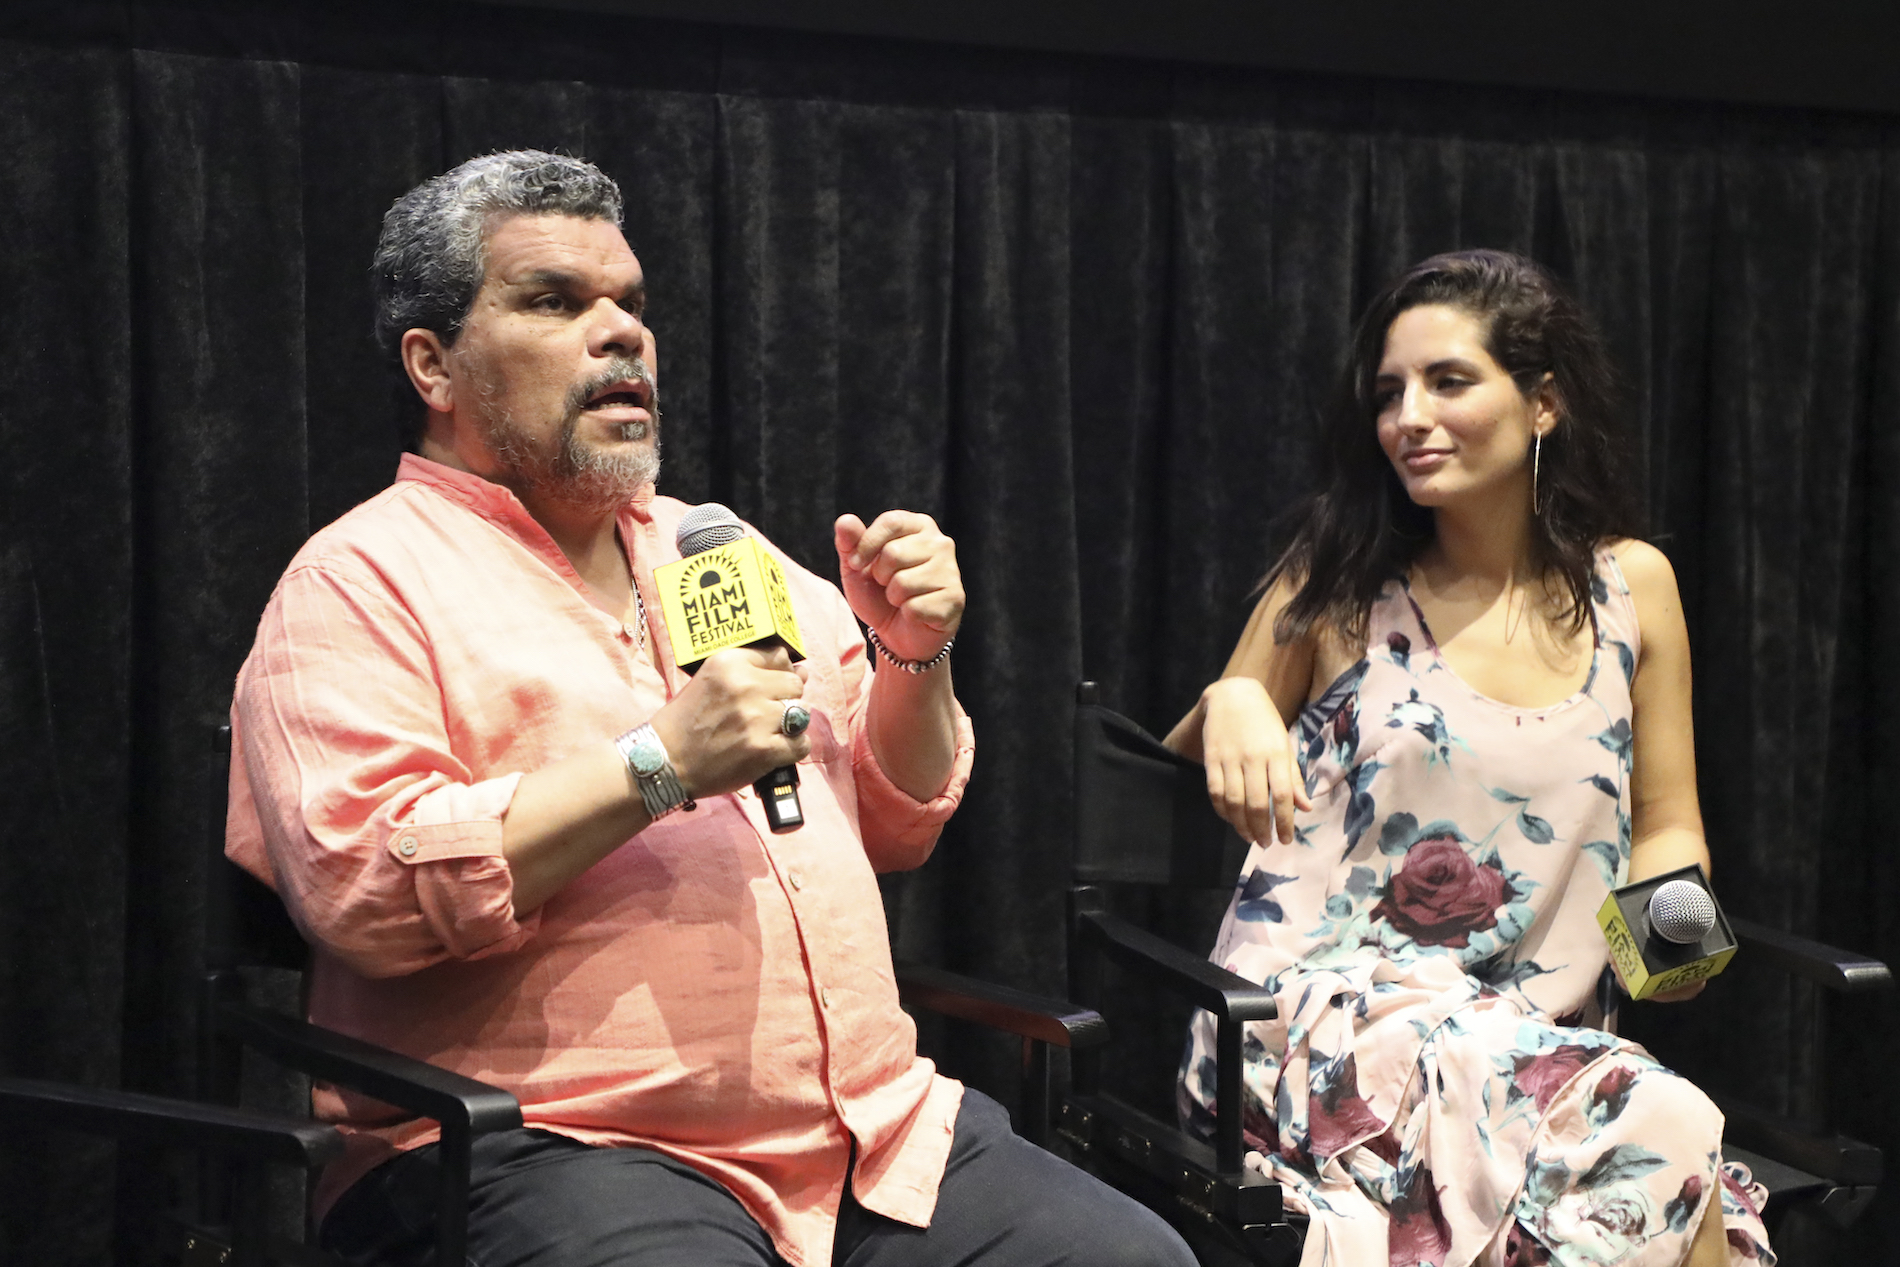 After 40 Years in the Business, Puerto Rican Actor Luis Guzmán Wants His Own Biopic